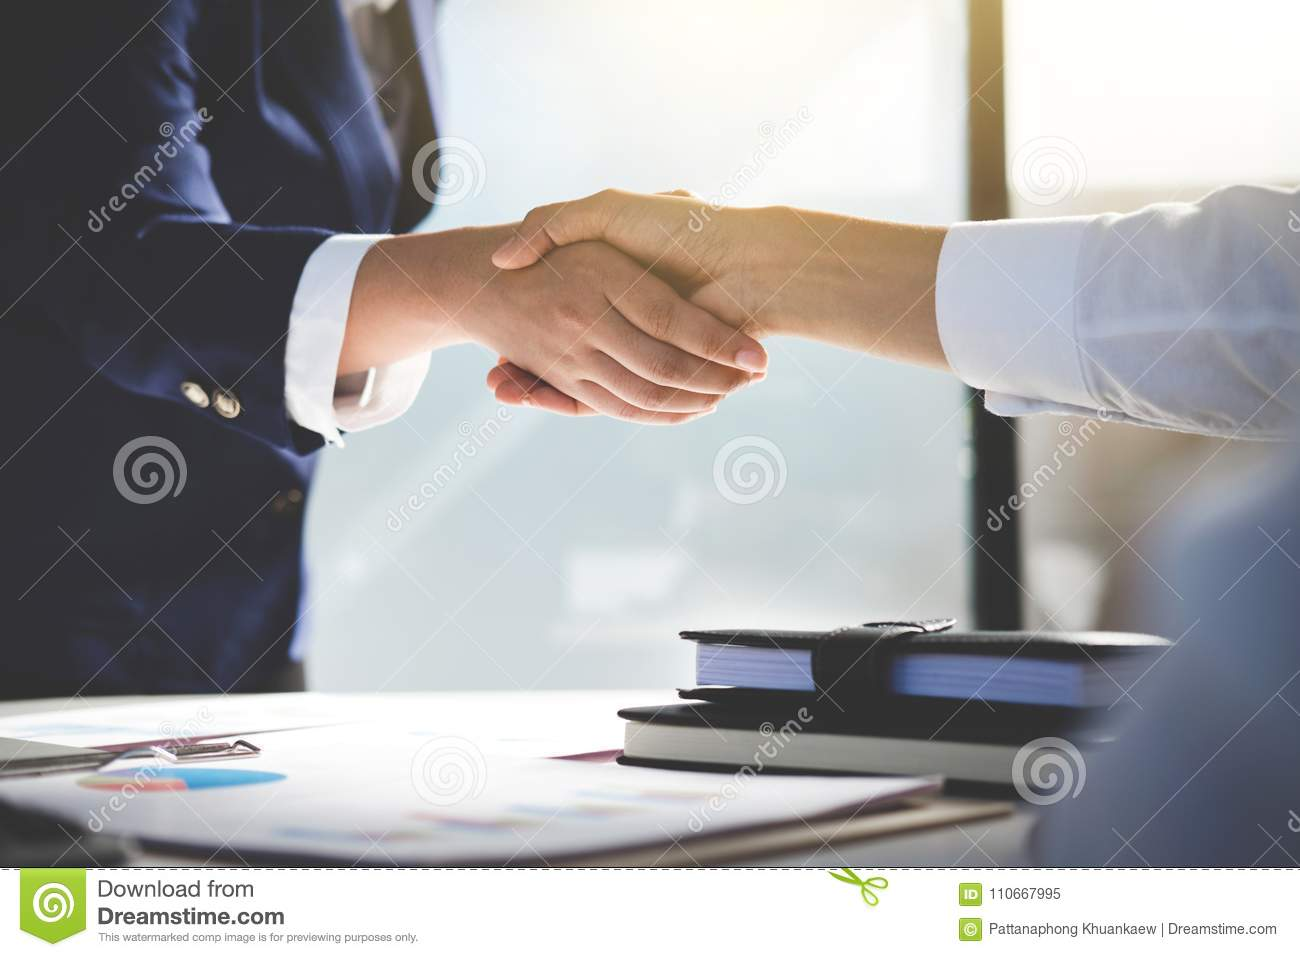 Teamwork process, Image of business team greeting handshake. Successful business people handshaking after good deal, success, dea